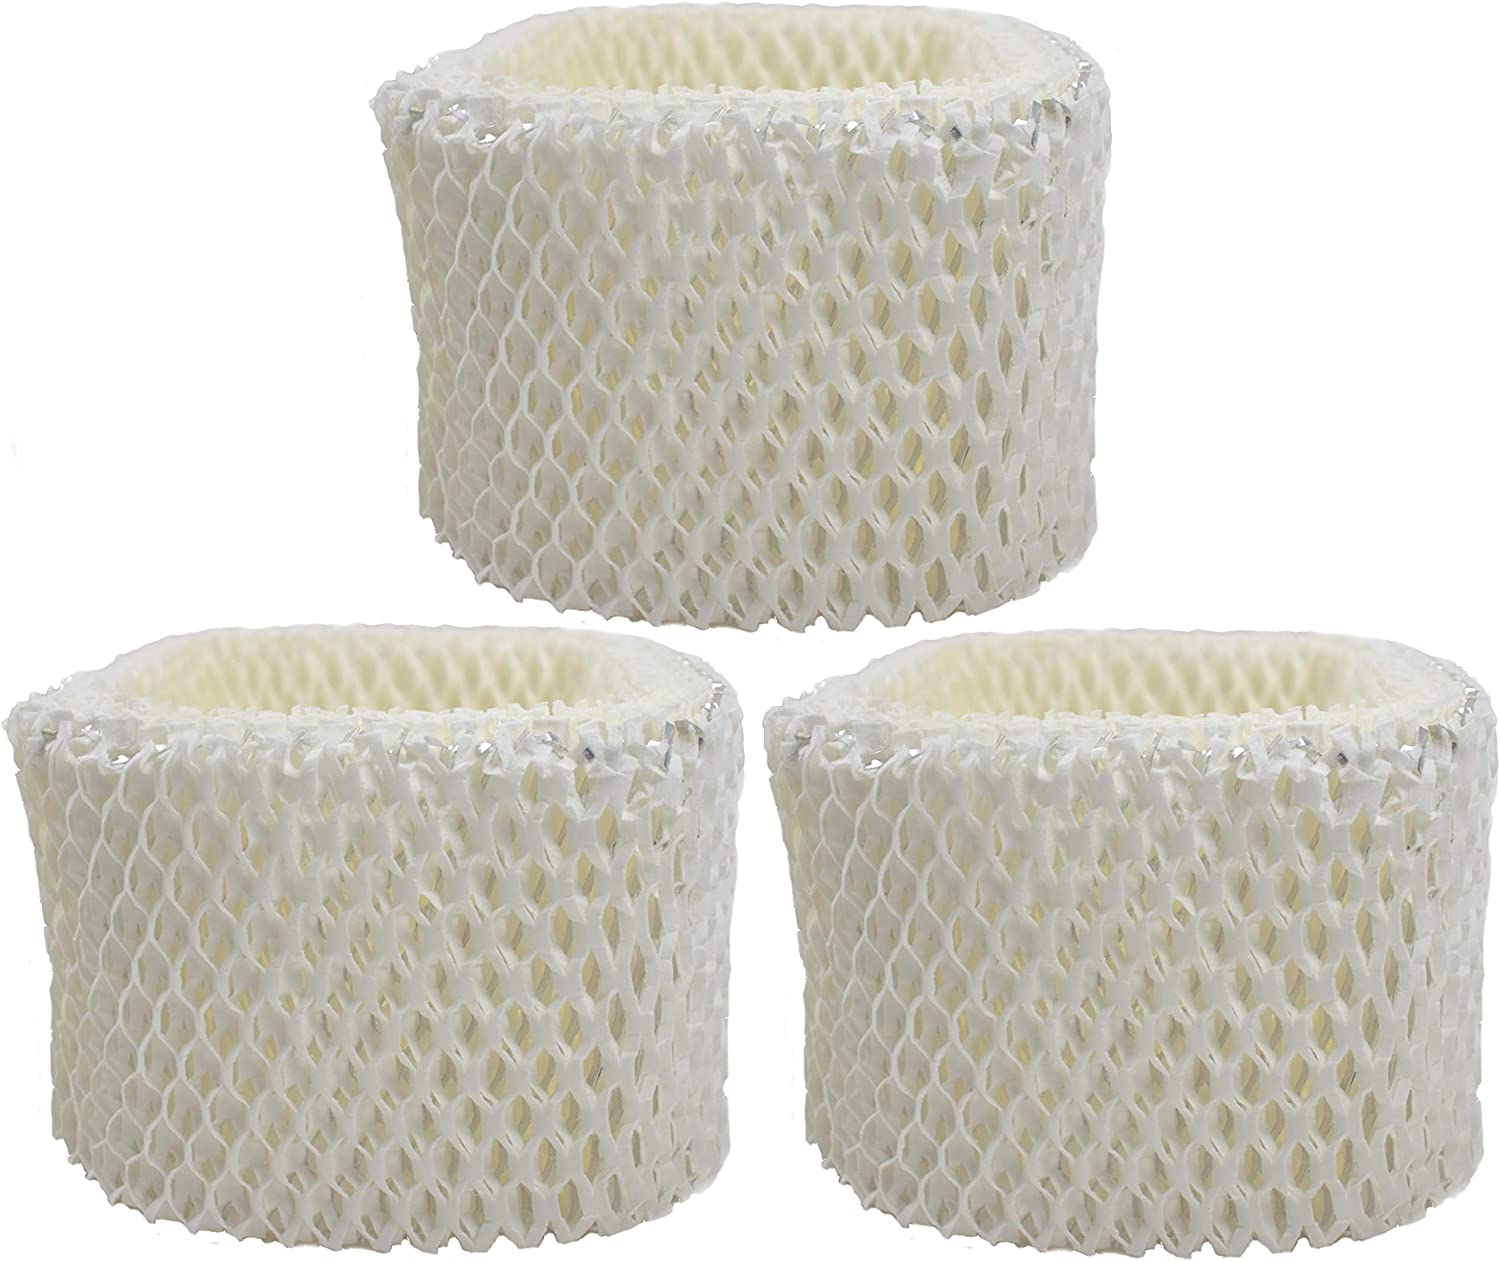 Air Filter Factory 4 Pack Compatible Replacement for Honeywell HCM-525 Humidifier Wick Filters